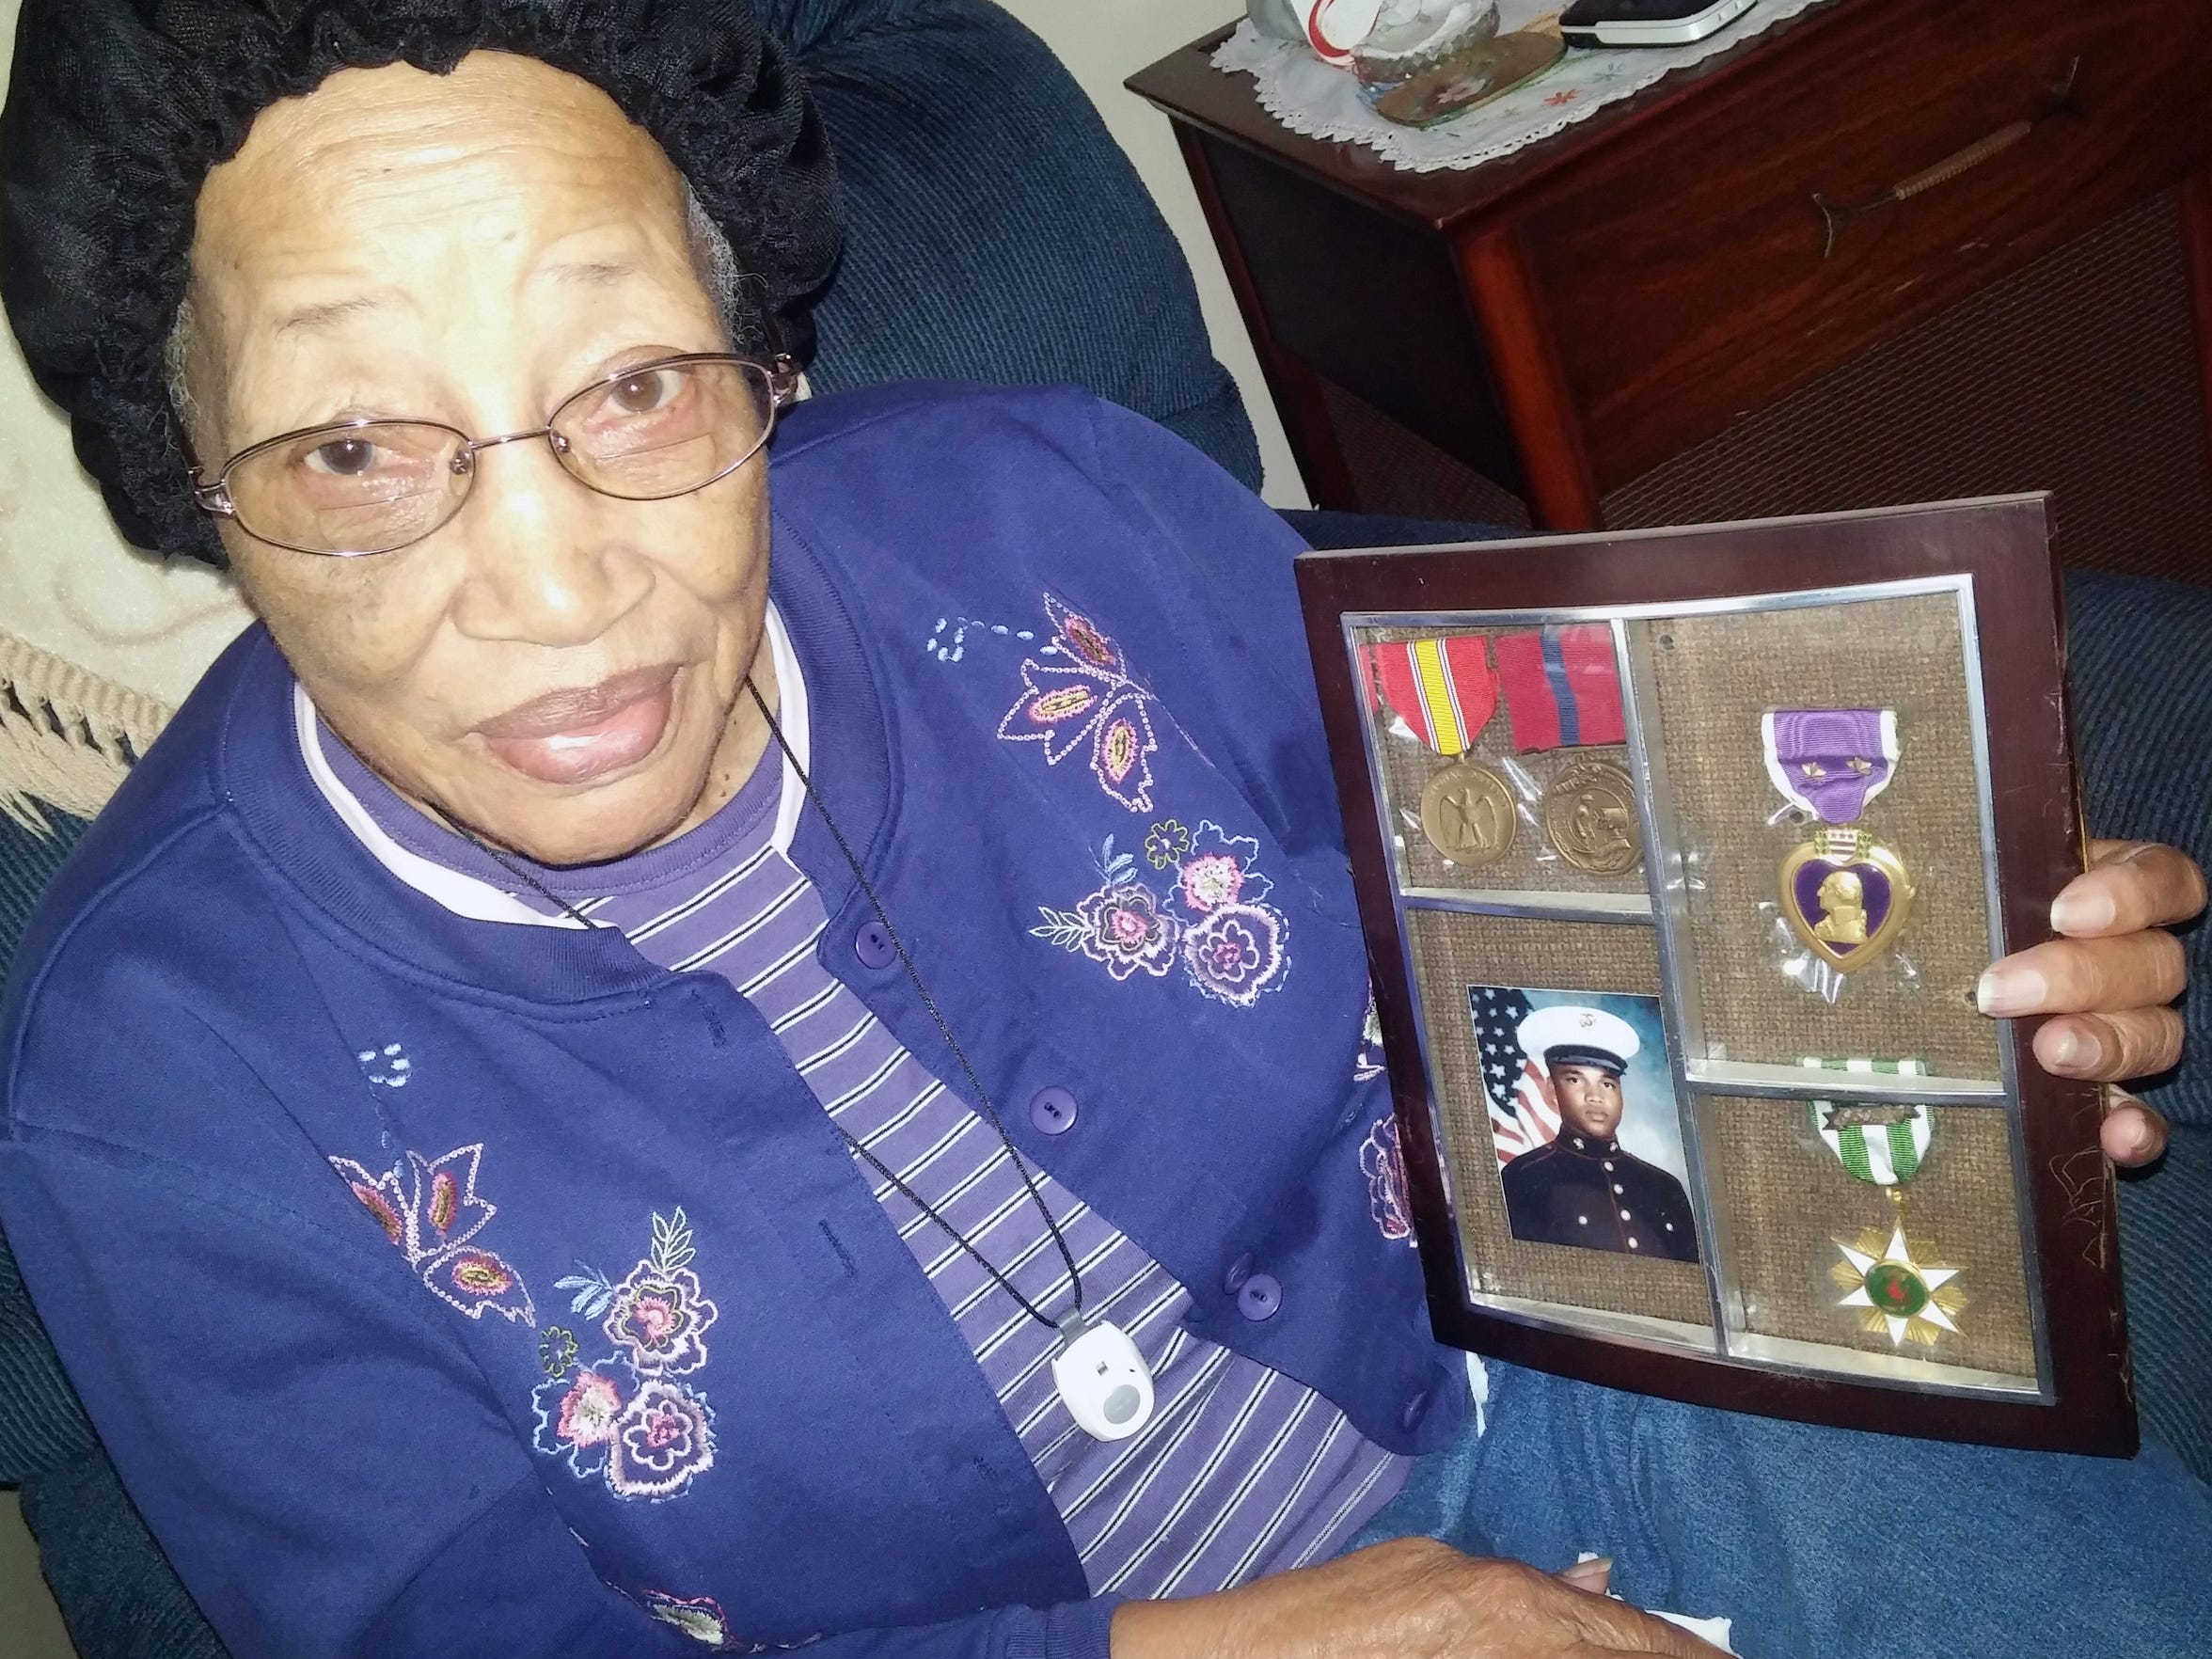 Arizona White of Staunton cradles the frame holding a photograph and the medals from her son Lin Williams who was killed in Vietnam.